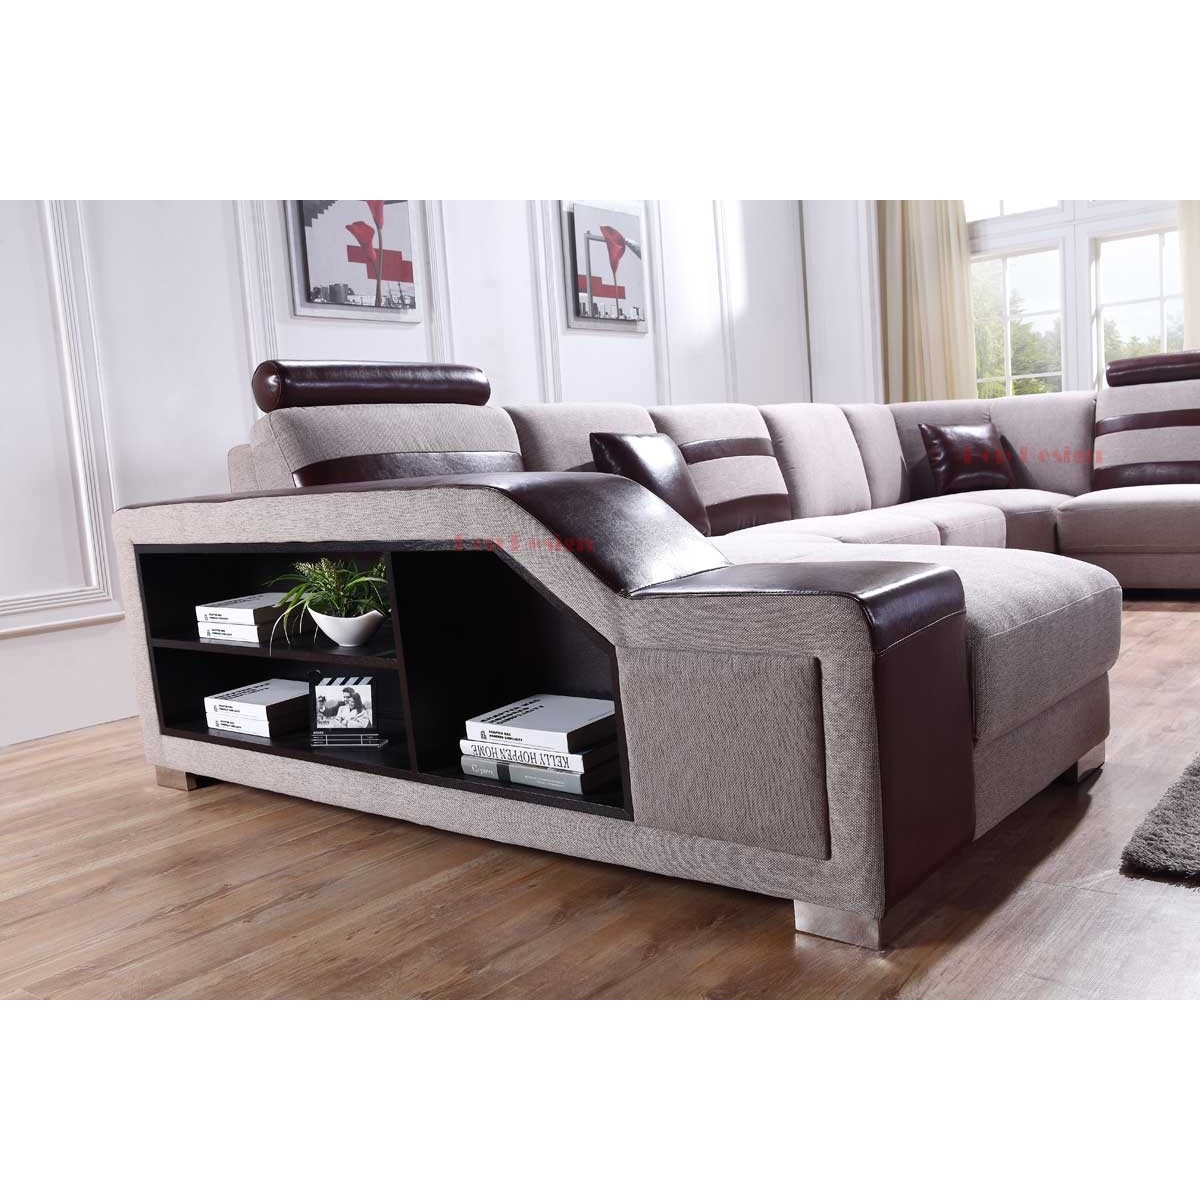 canap panoramique en microfibre castel canap s en tissu canap s. Black Bedroom Furniture Sets. Home Design Ideas